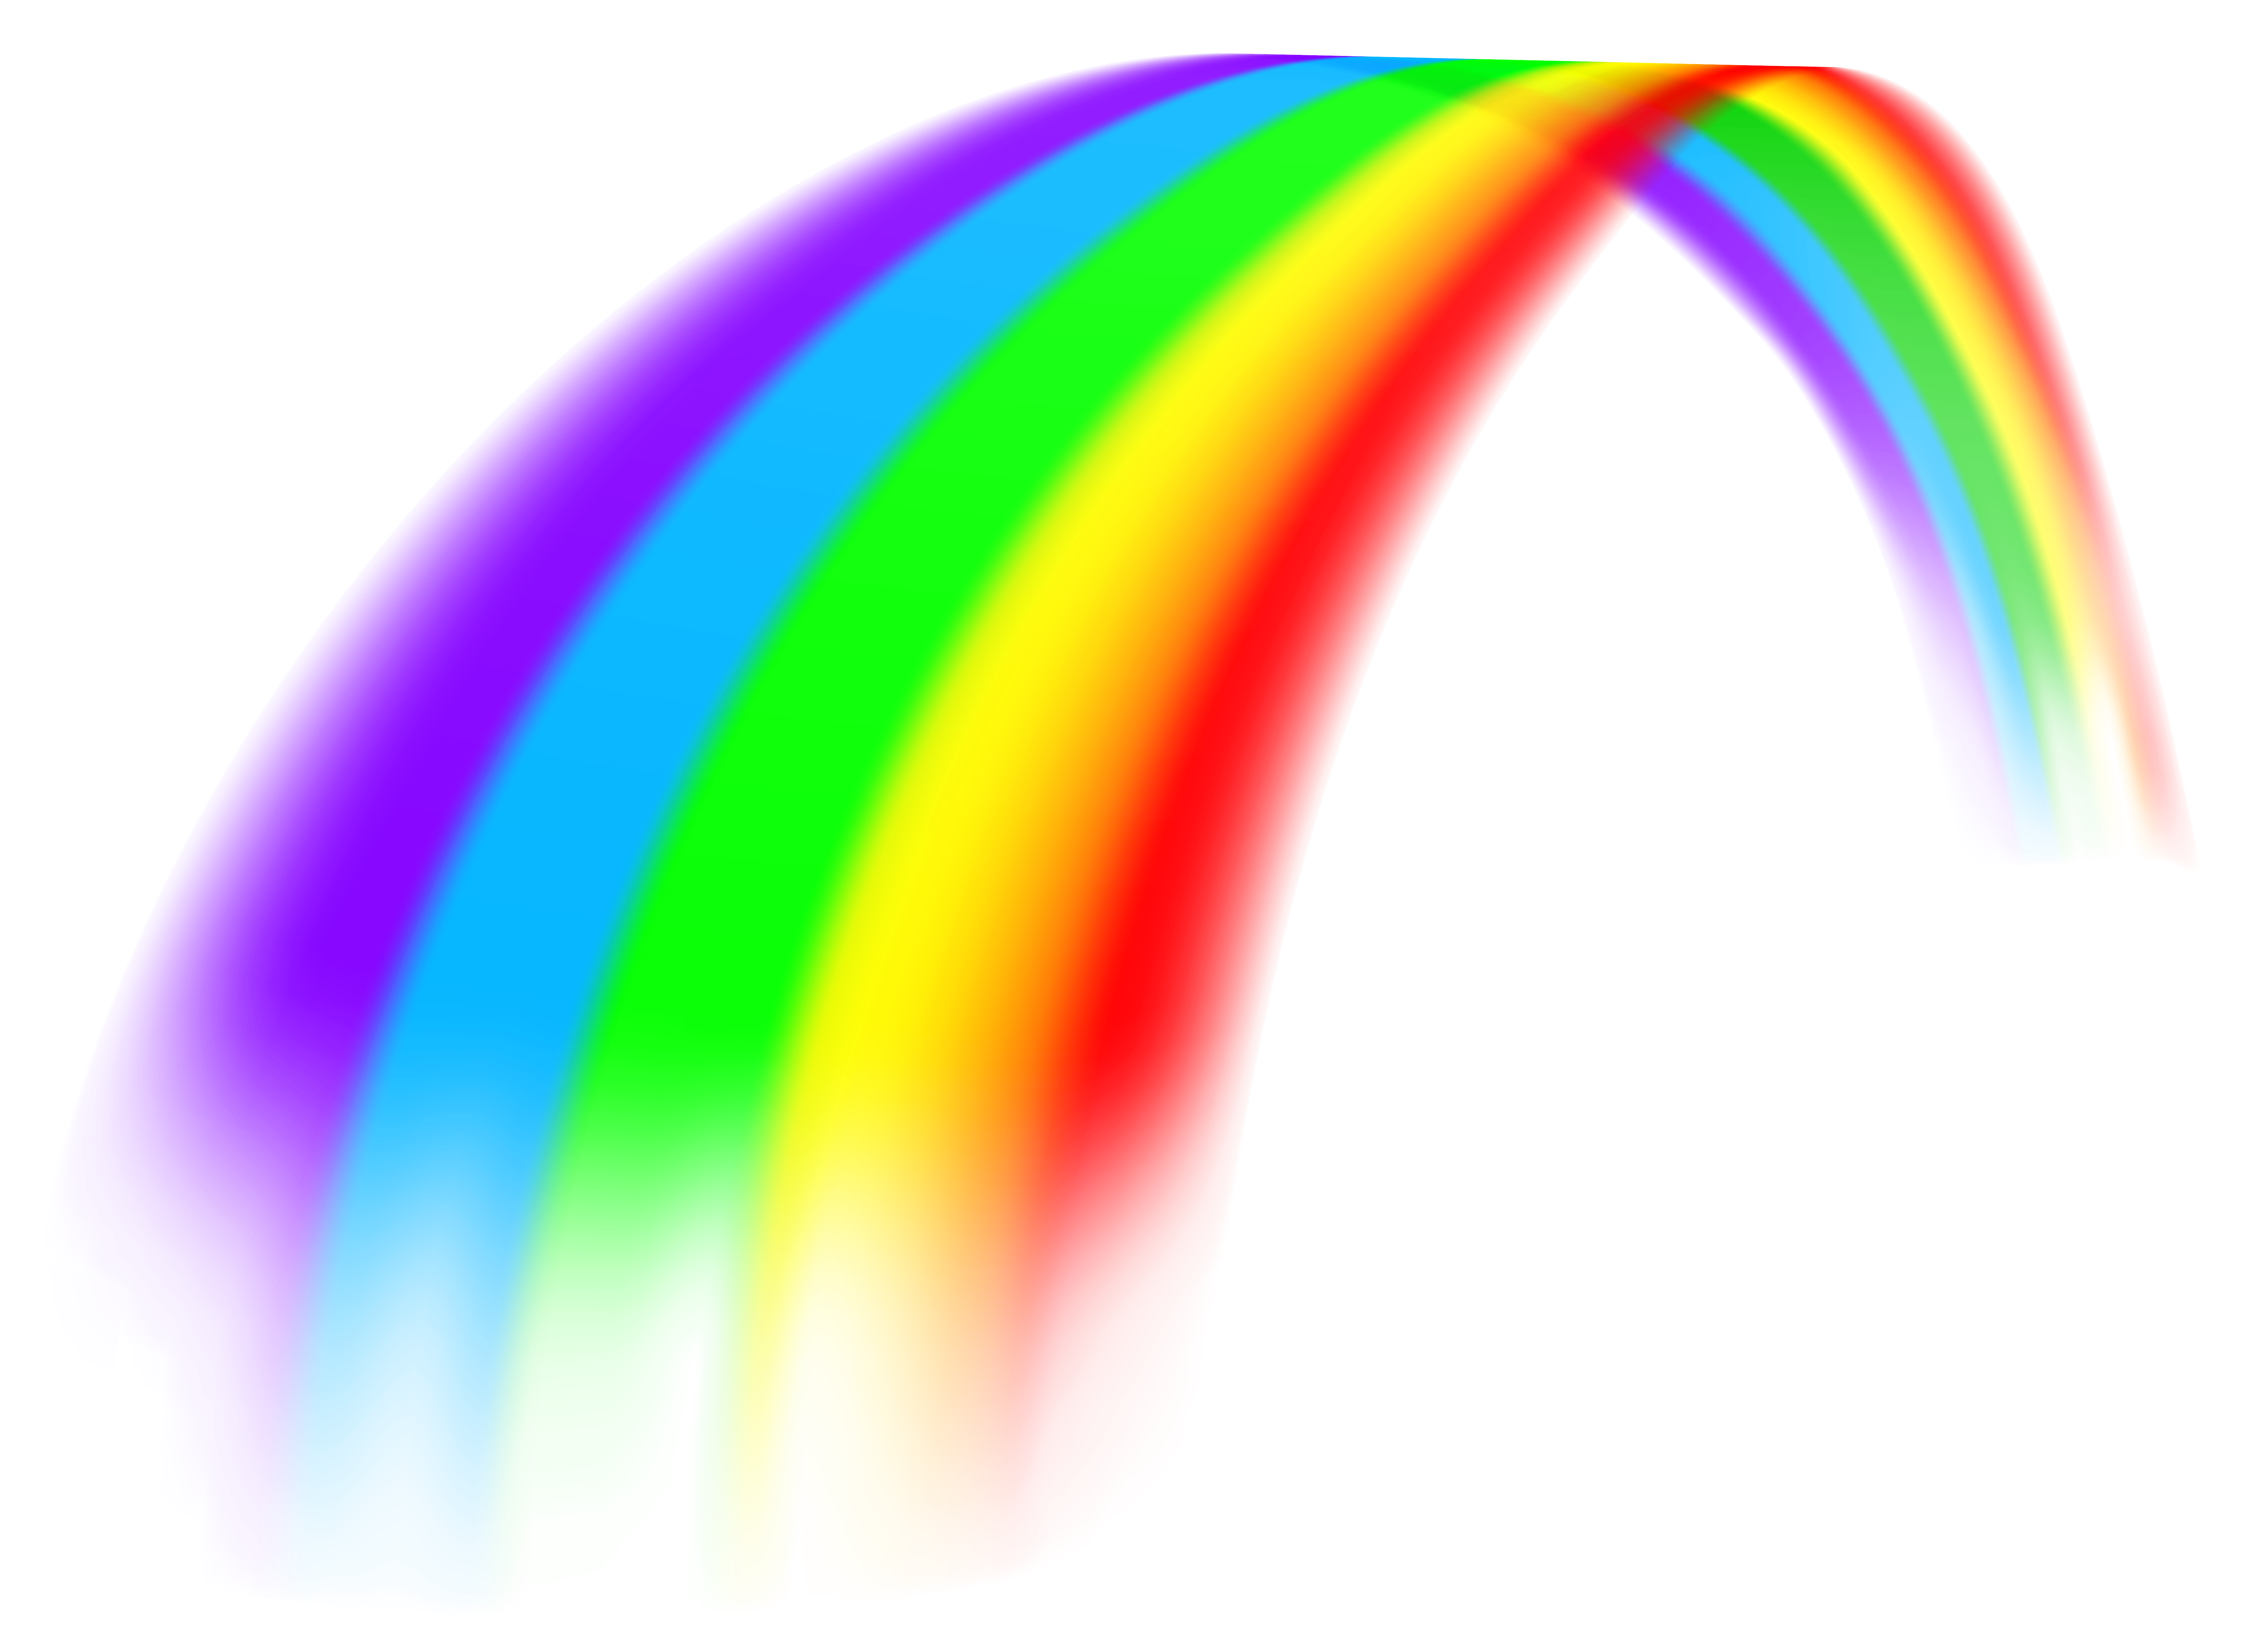 Rainbow and sun clipart background graphic rainbow png transparent background - Google Търсене | rainbows ... graphic